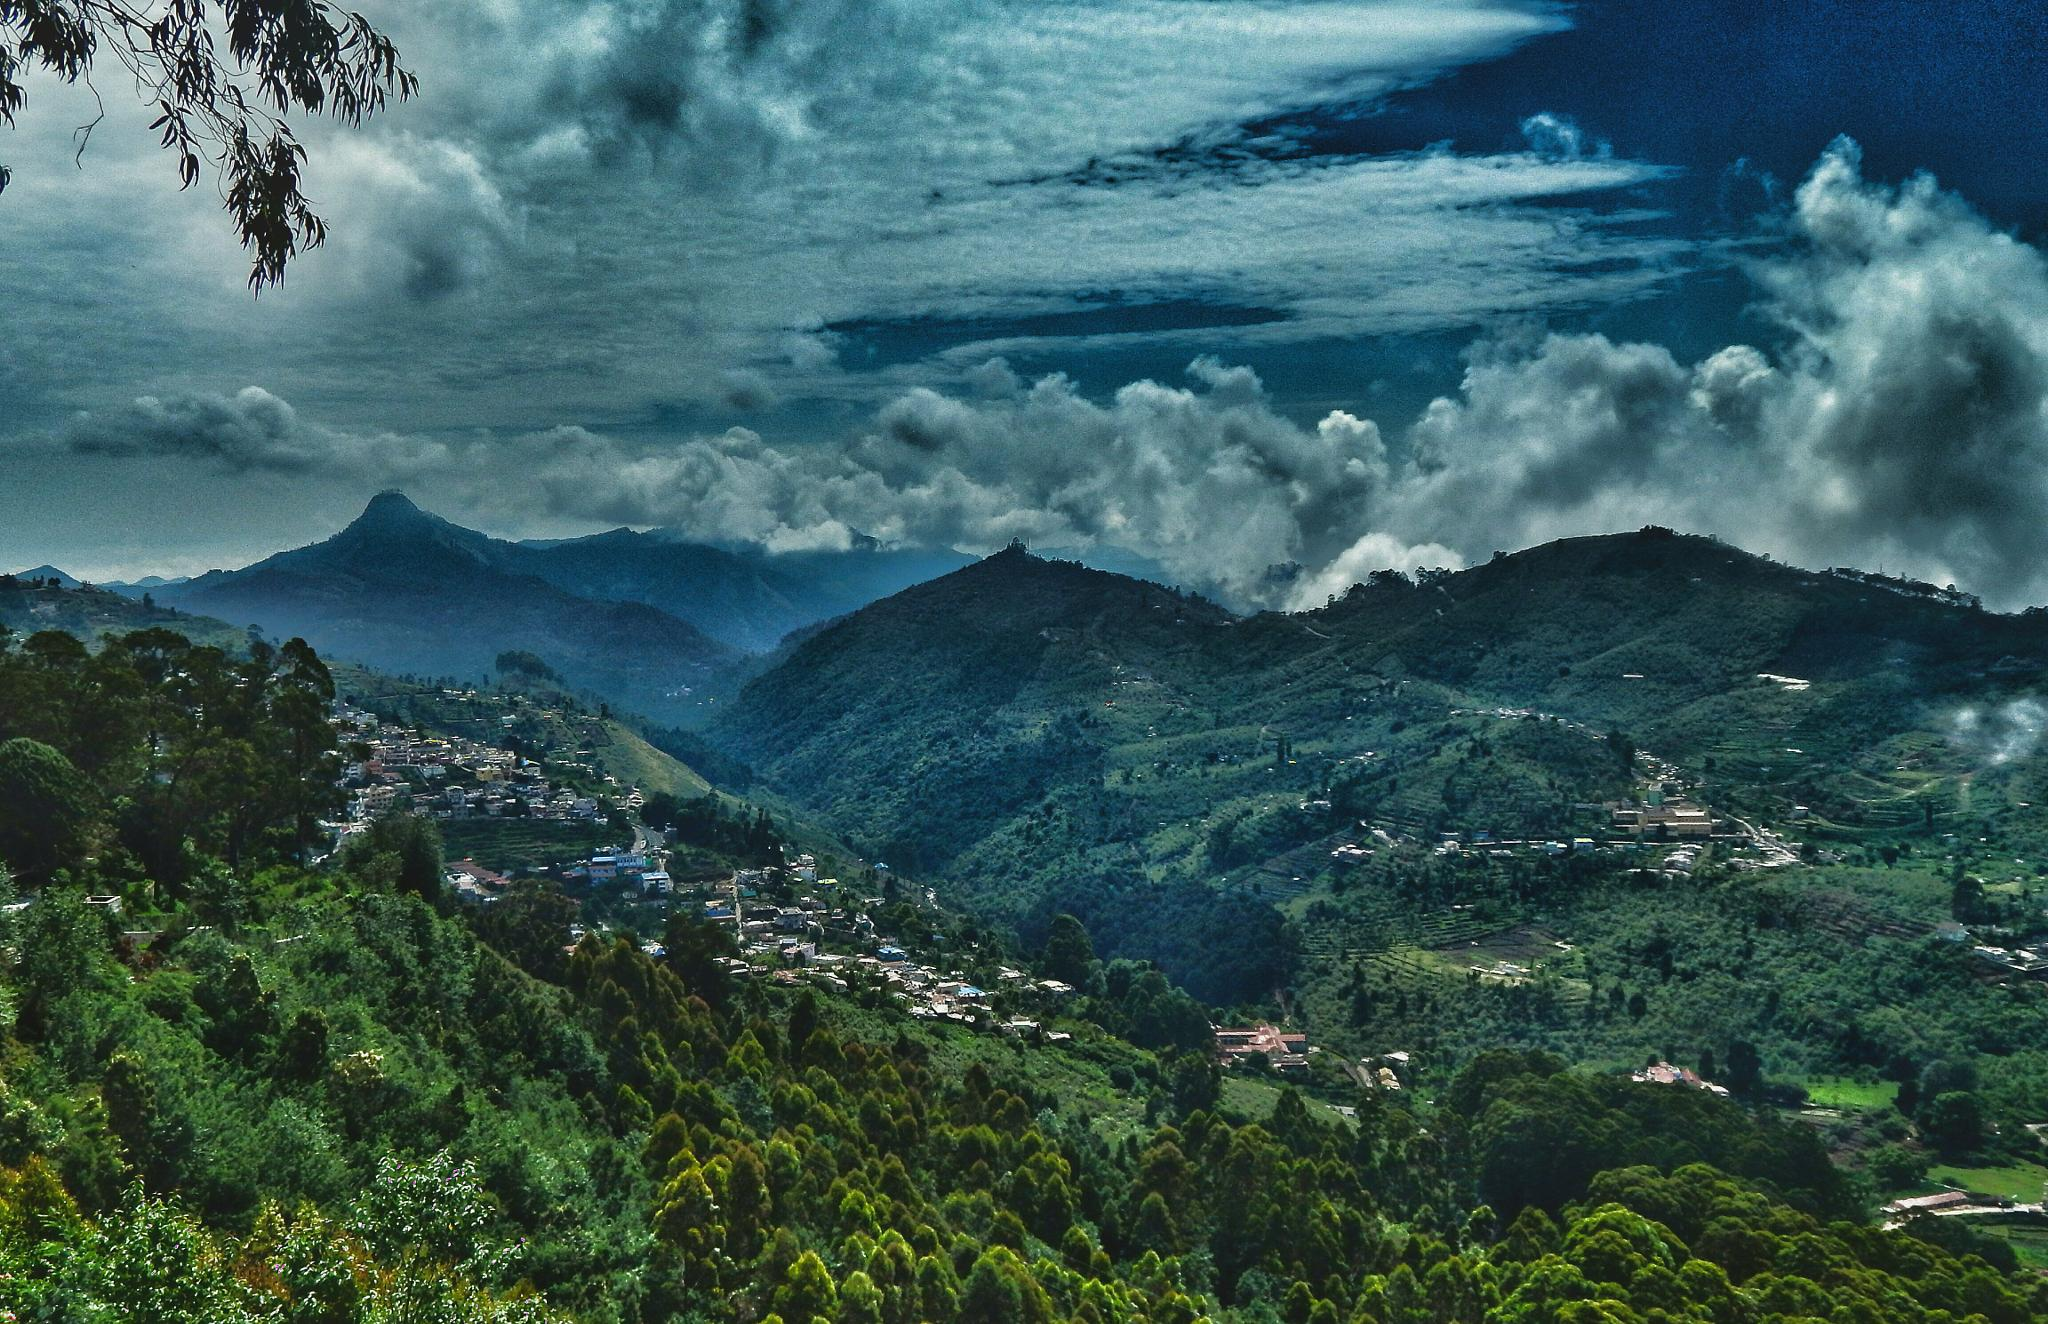 landscape3 by Aritra ghosh